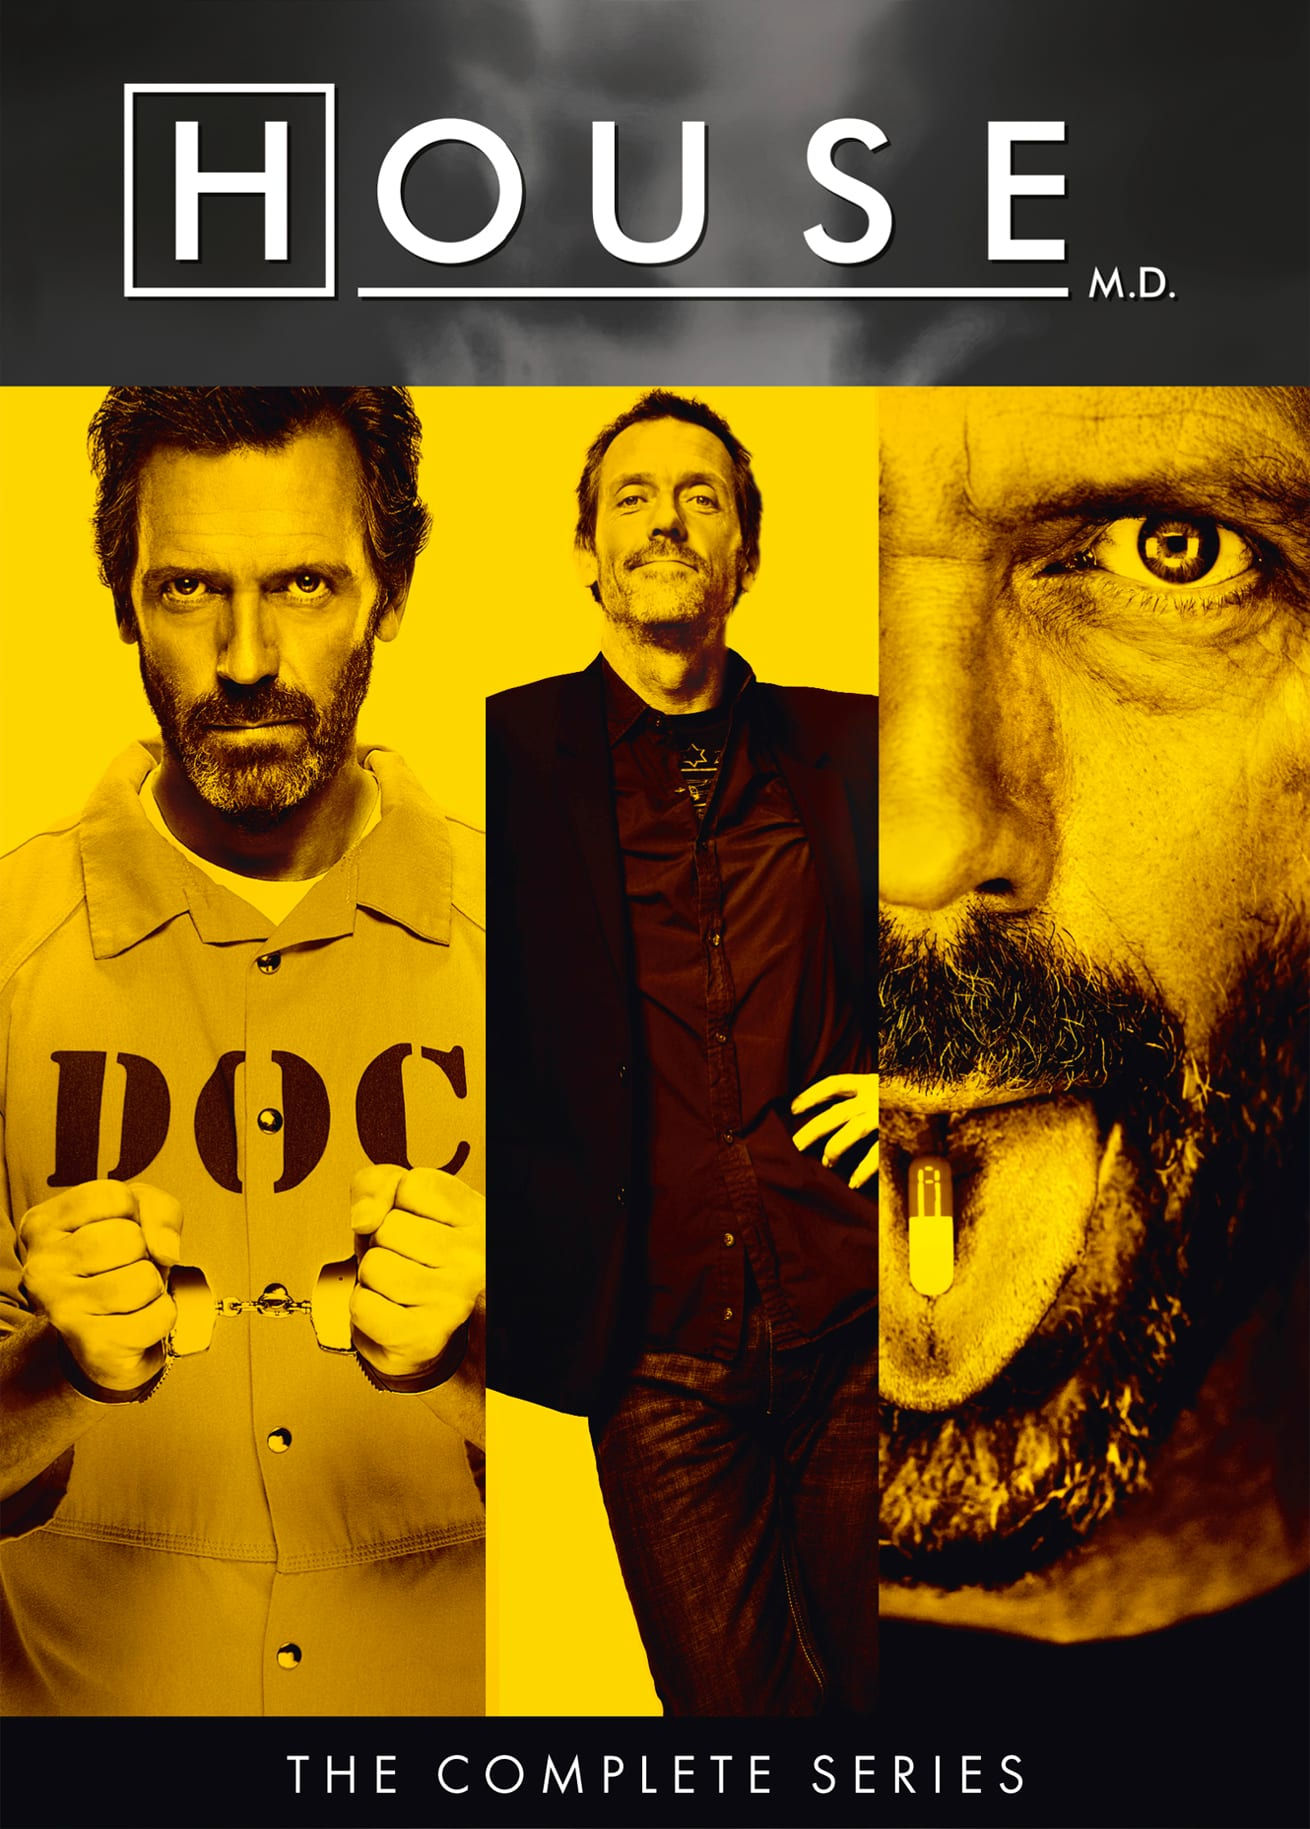 House: The Complete Seasons 1-8 [DVD]